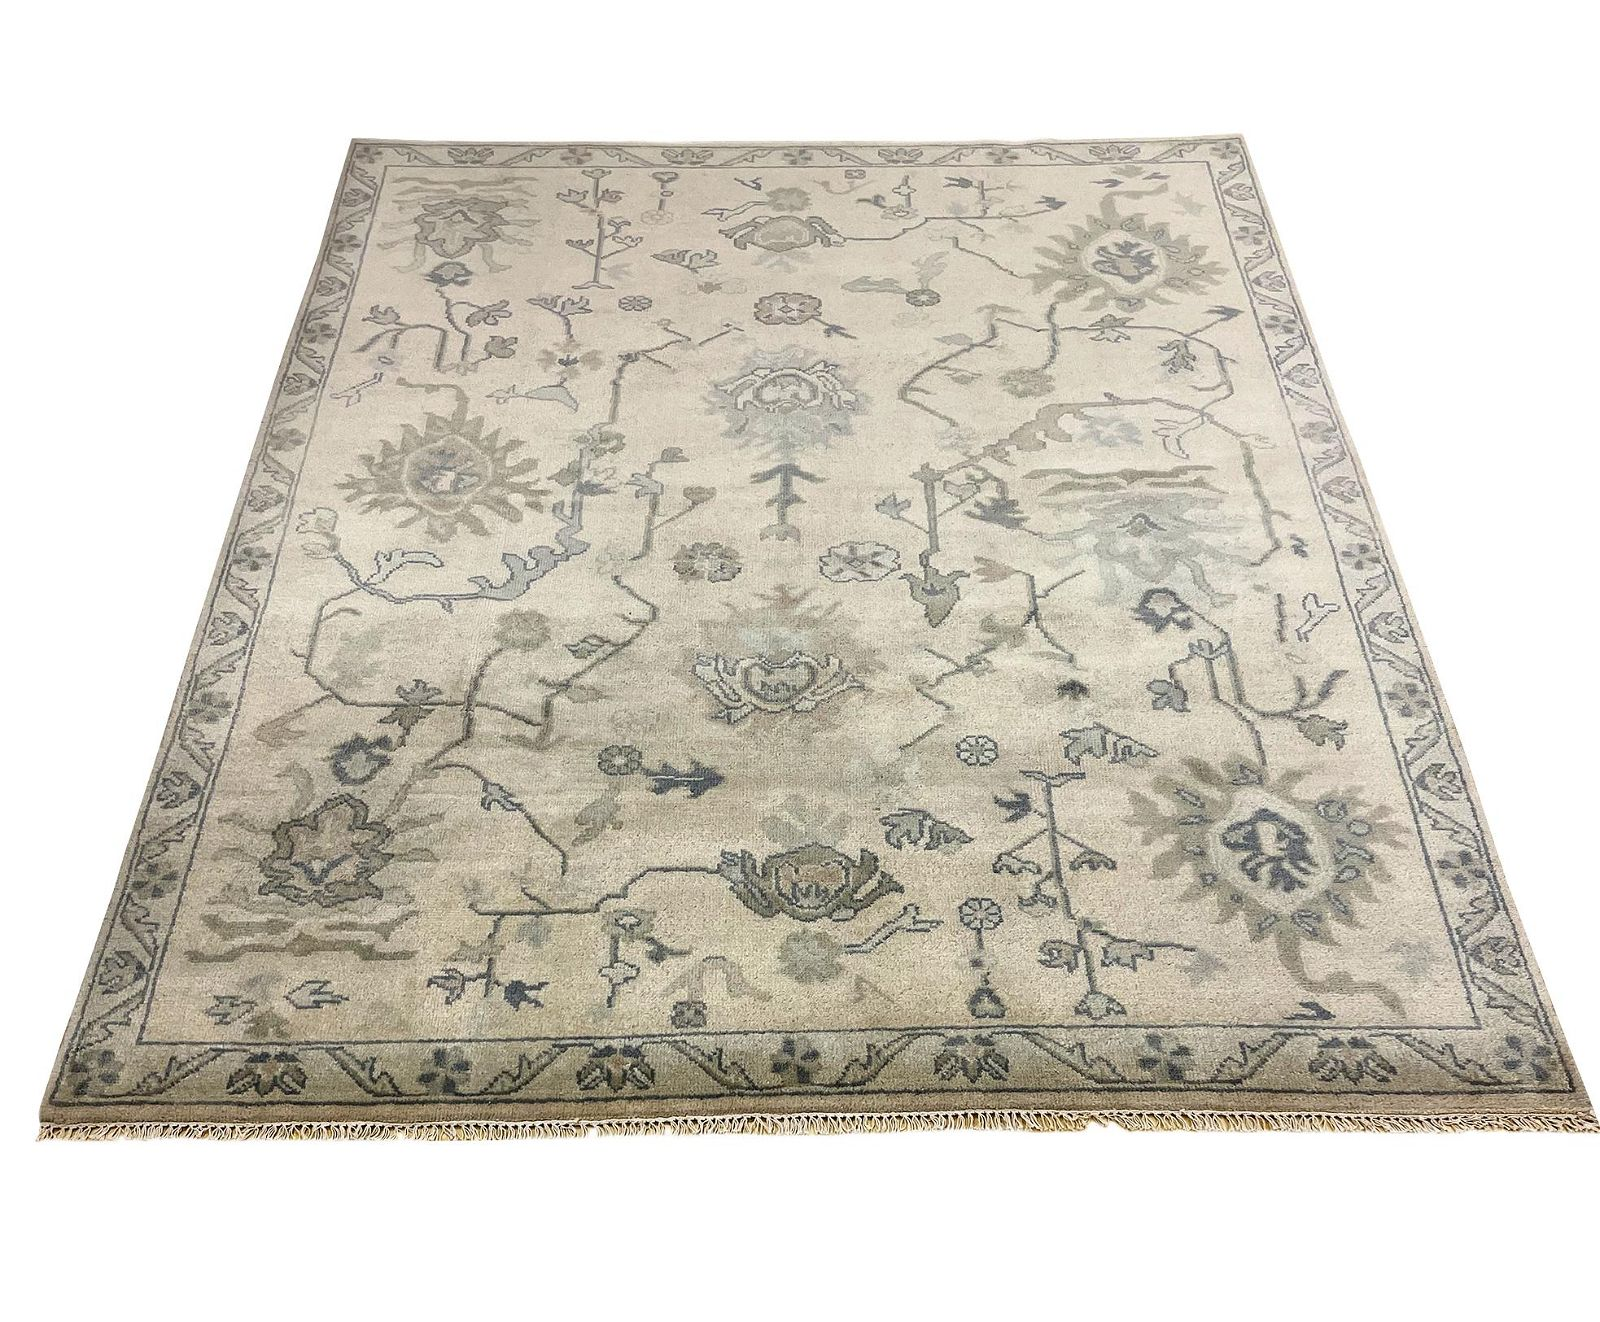 oushak m257 style rug wool pile hand knotted